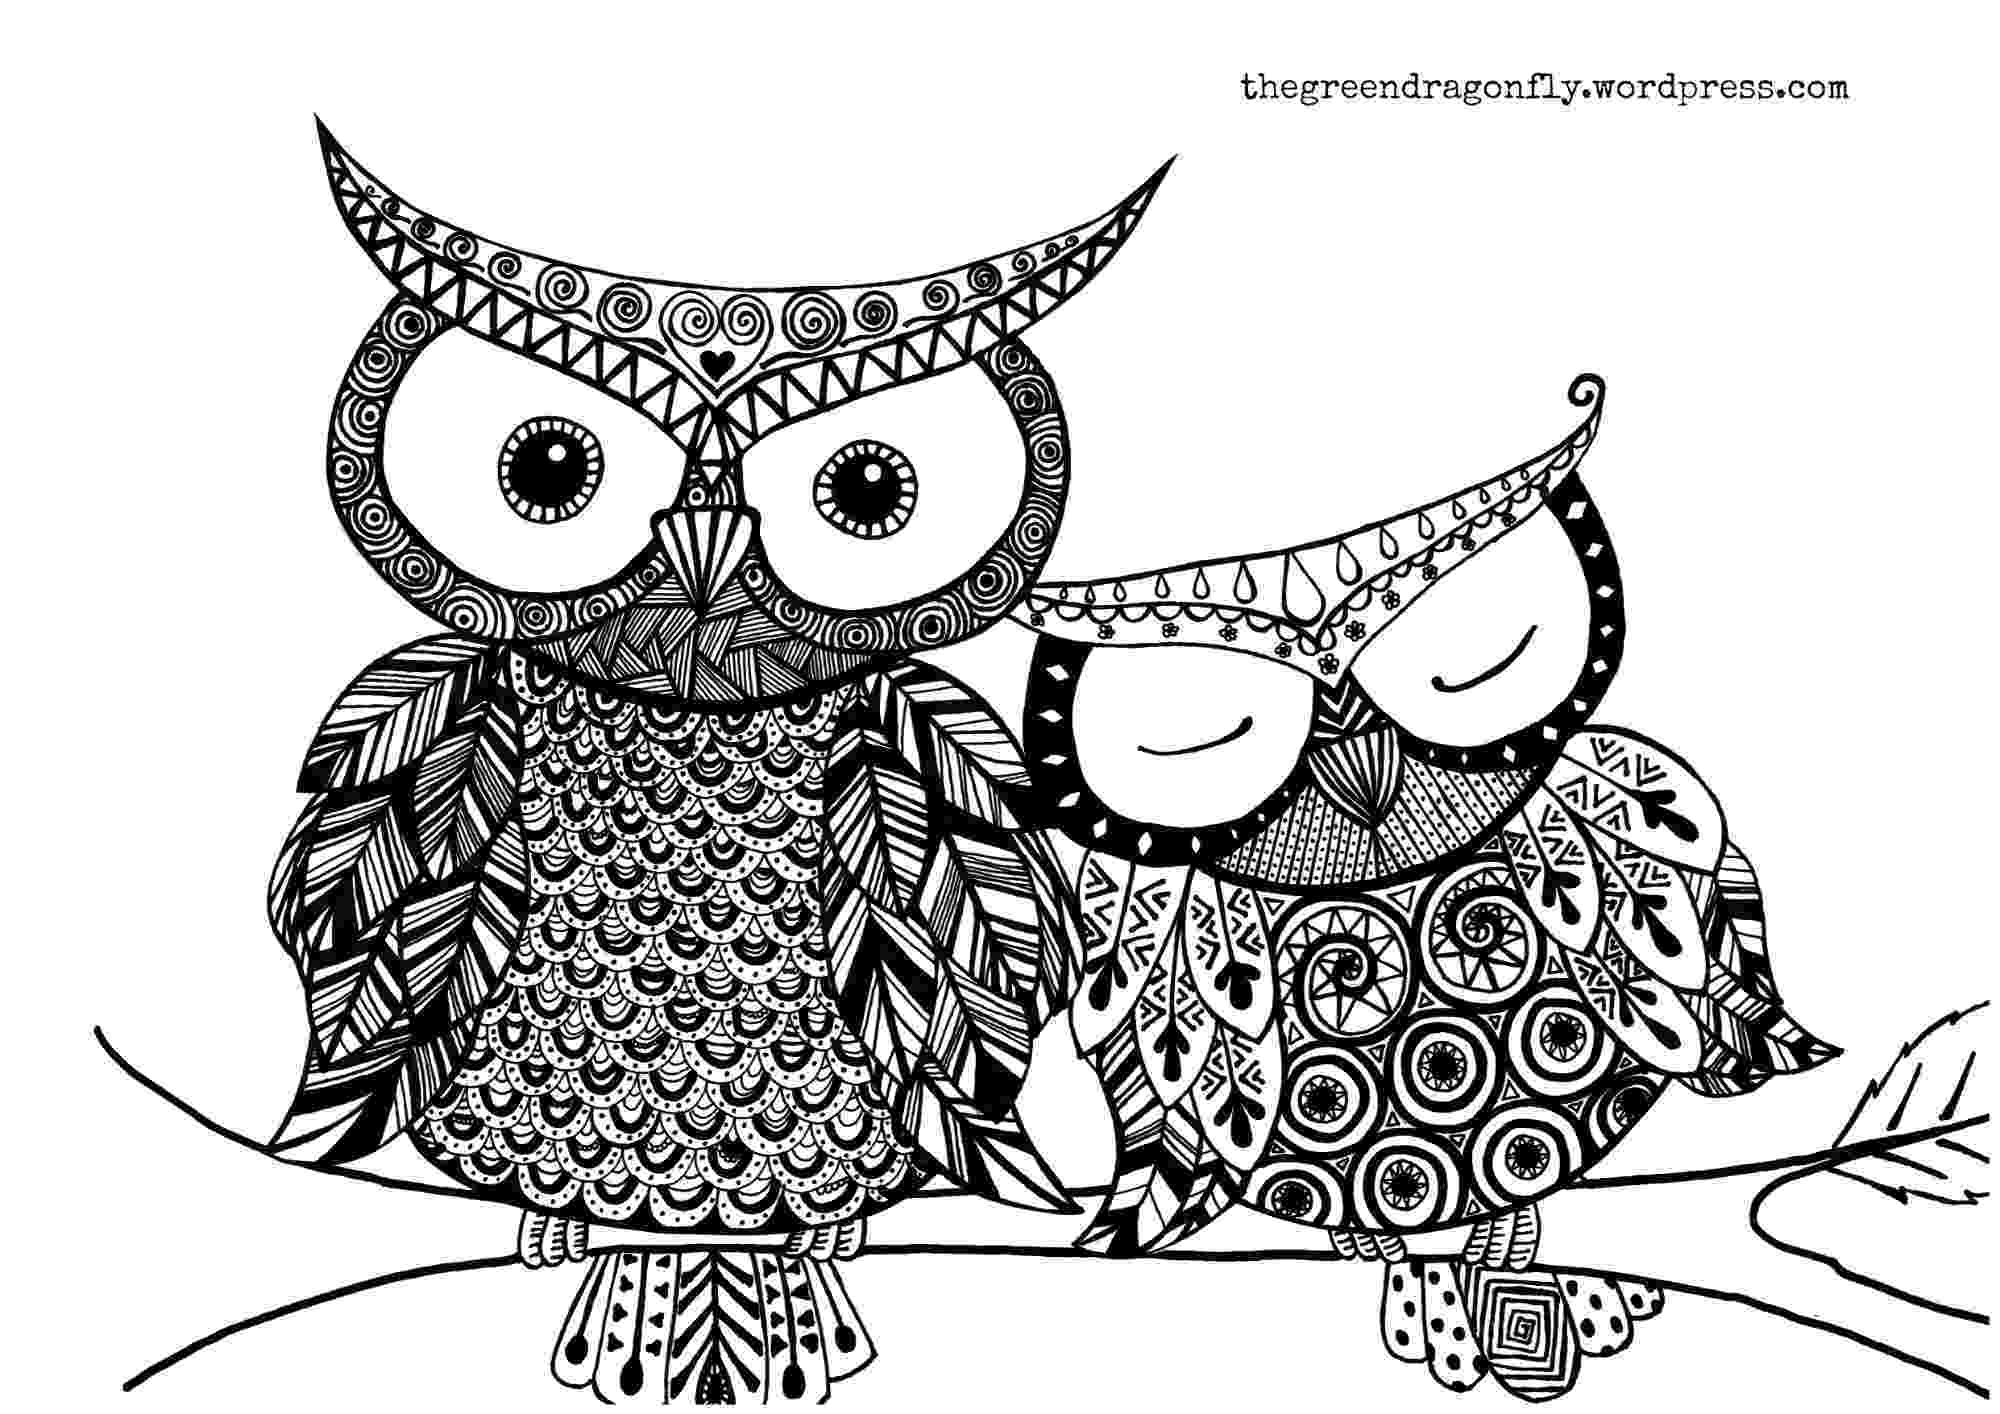 coloring pages for adults with owls express yourself 11 free adult coloring pages thegoodstuff owls coloring for with pages adults